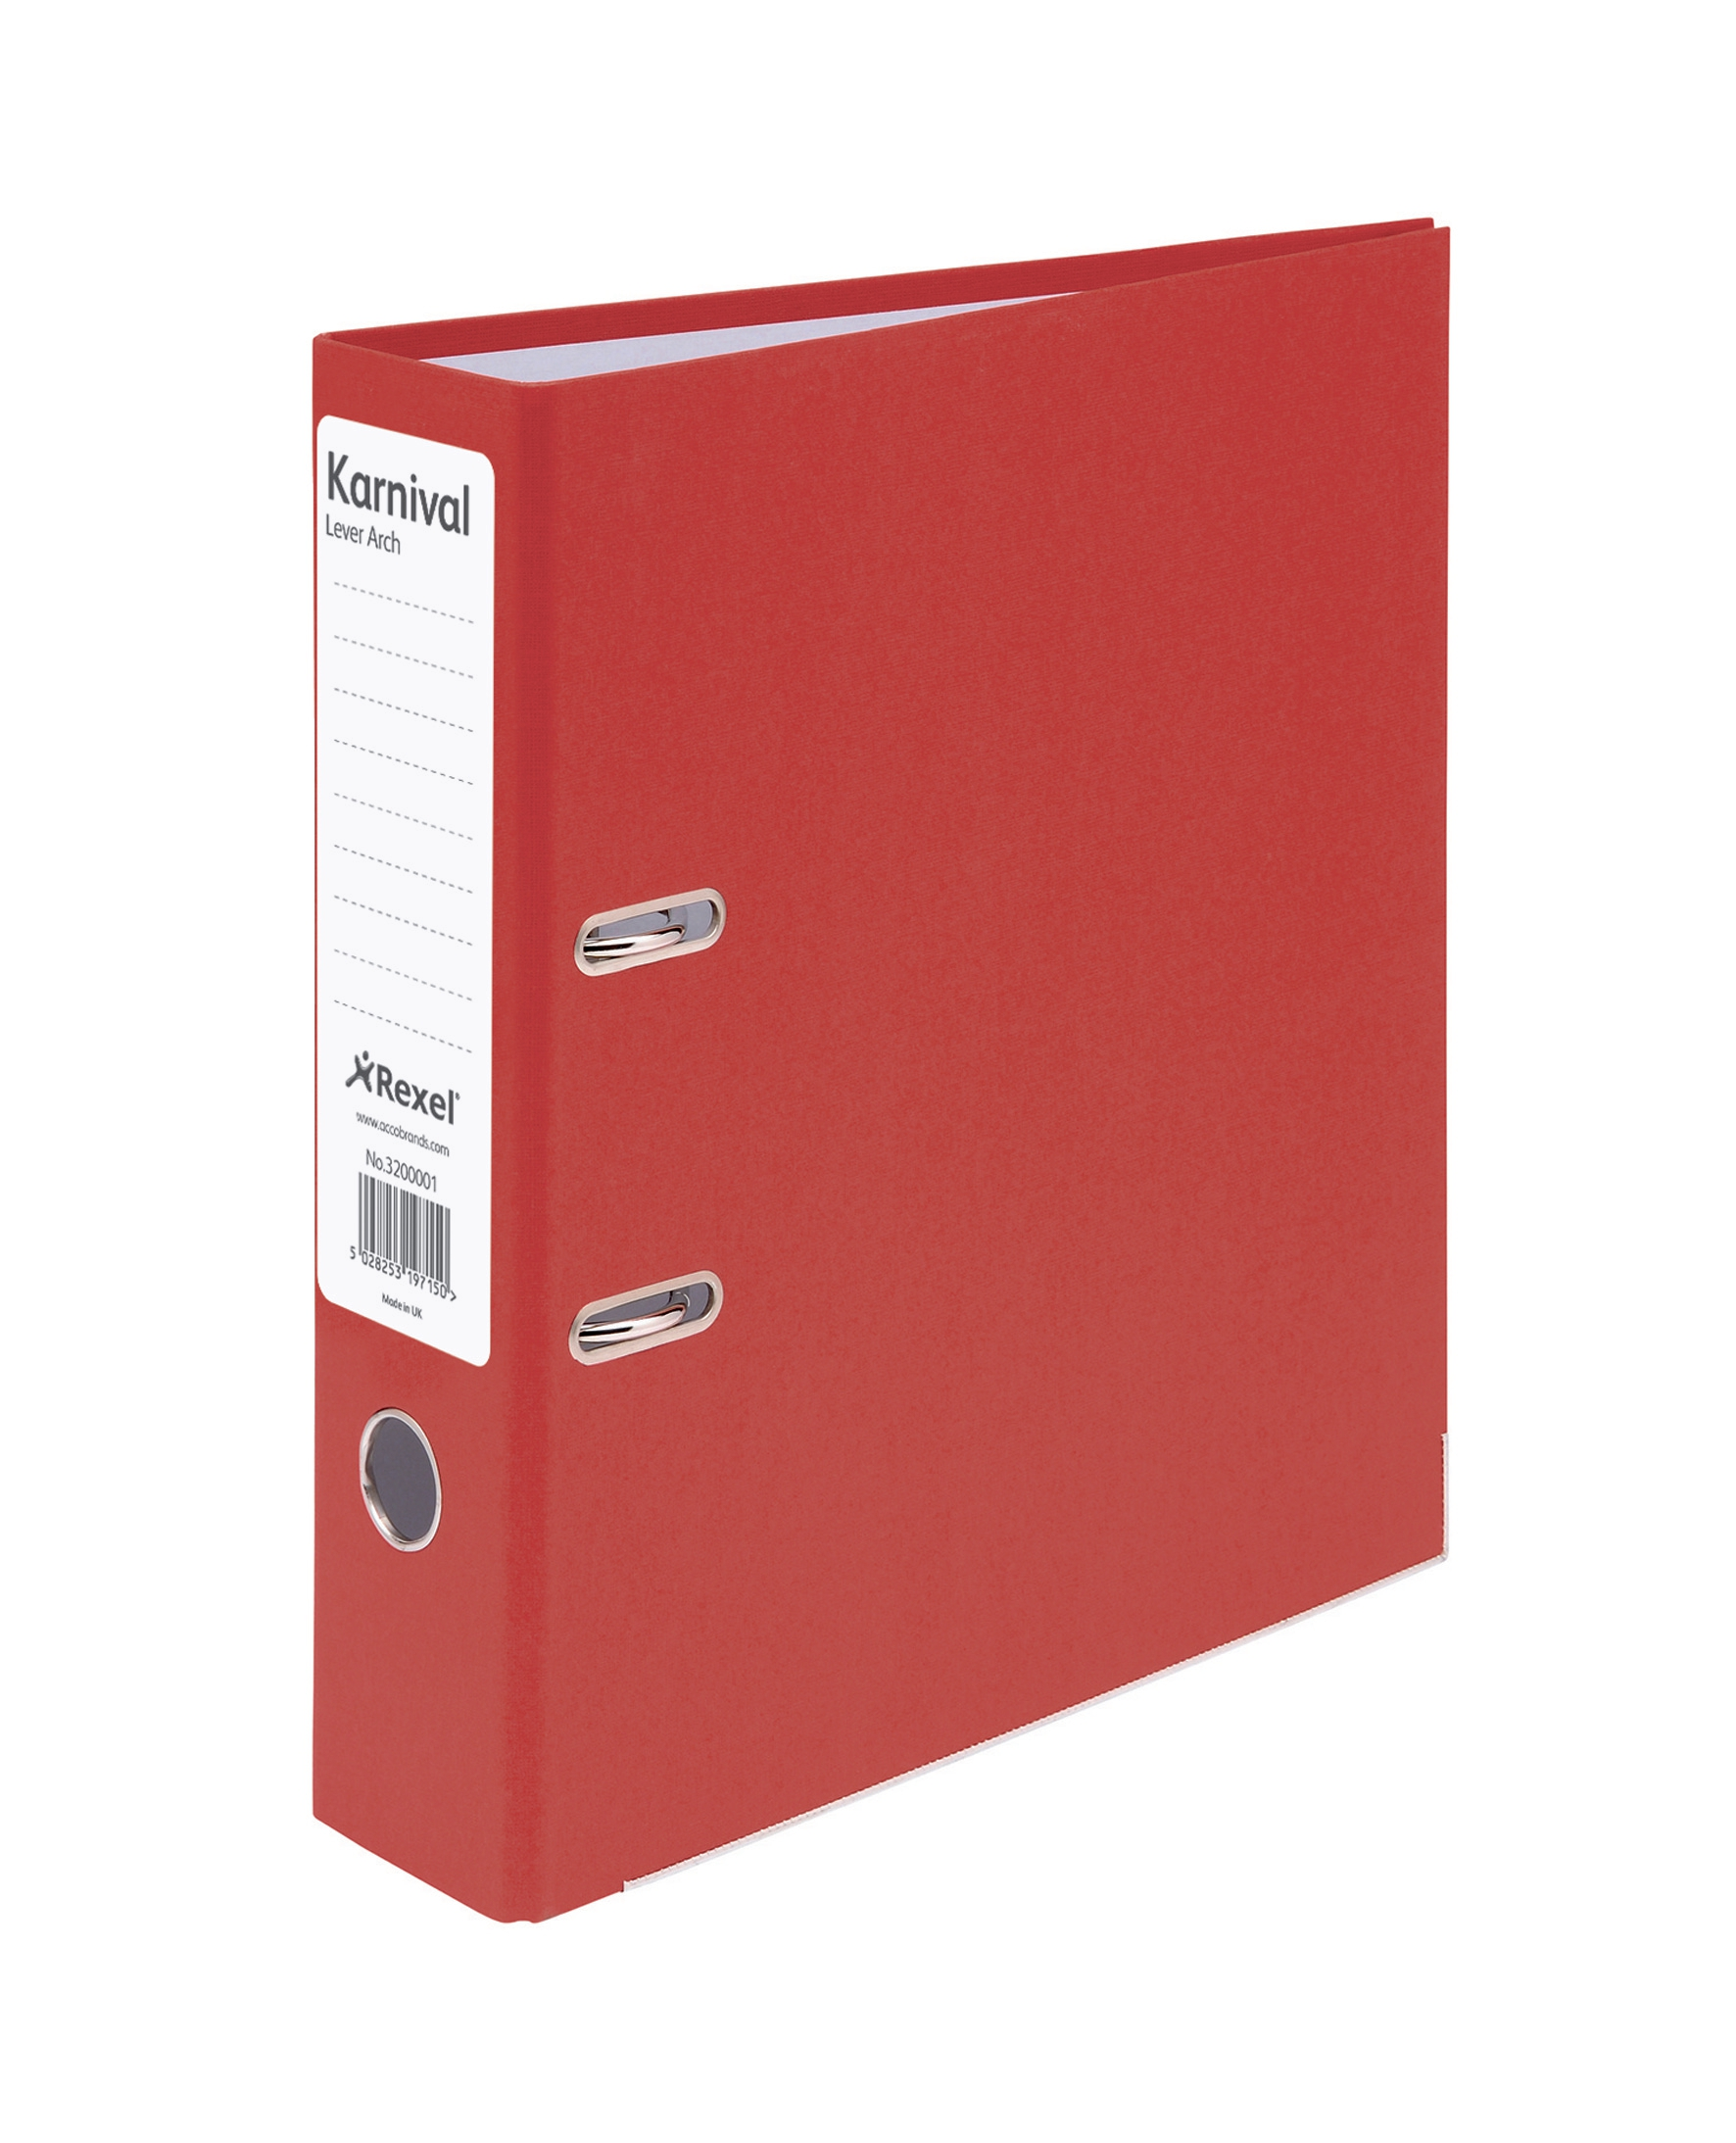 Rexel Karnival Lever Arch File Paper over Board Slotted 70mm A4 Red